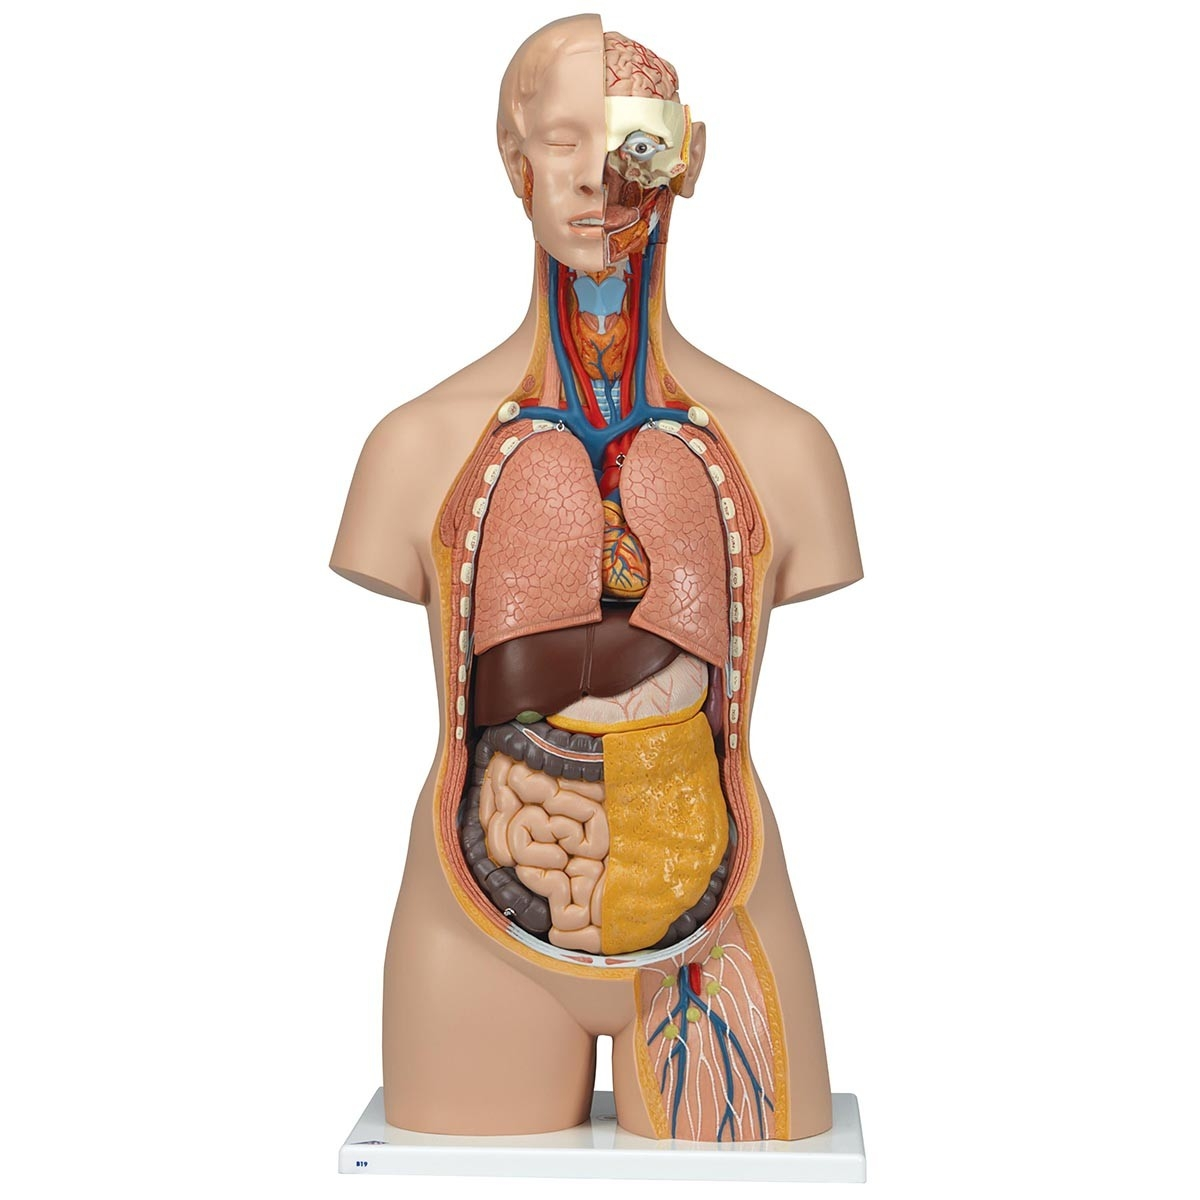 Classic Human Unisex Torso Anatomy Model (18 Parts) - A-100483 - Anatomical Models Torsos & Complete A-100483